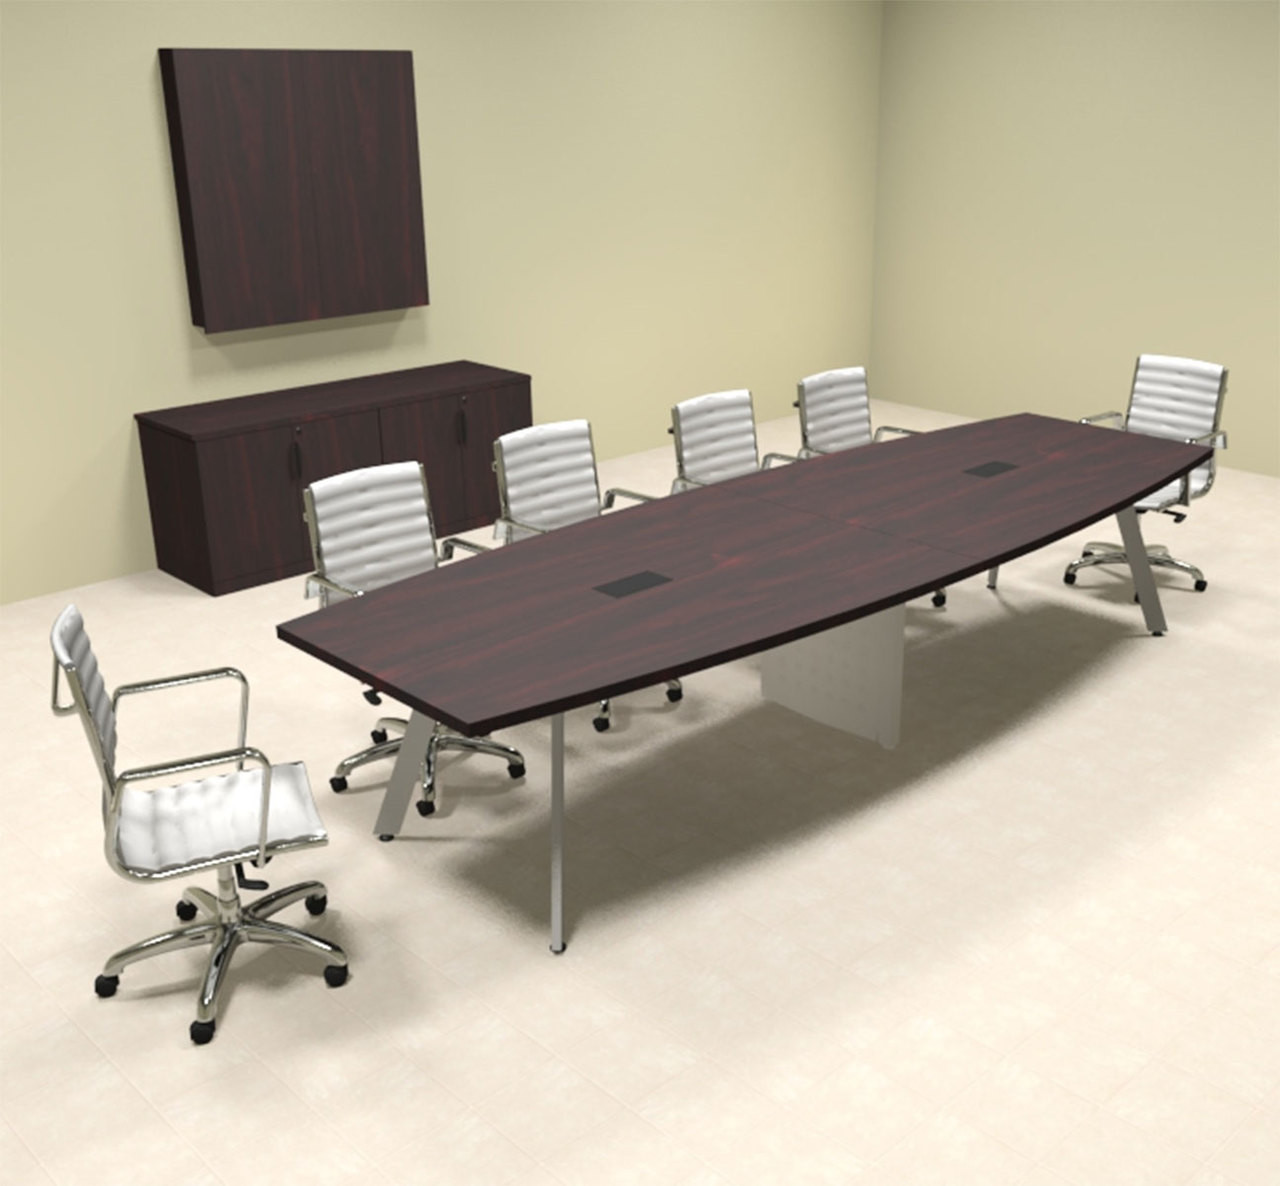 Modern Boat shaped 12' Feet Conference Table, #OF-CON-CV19